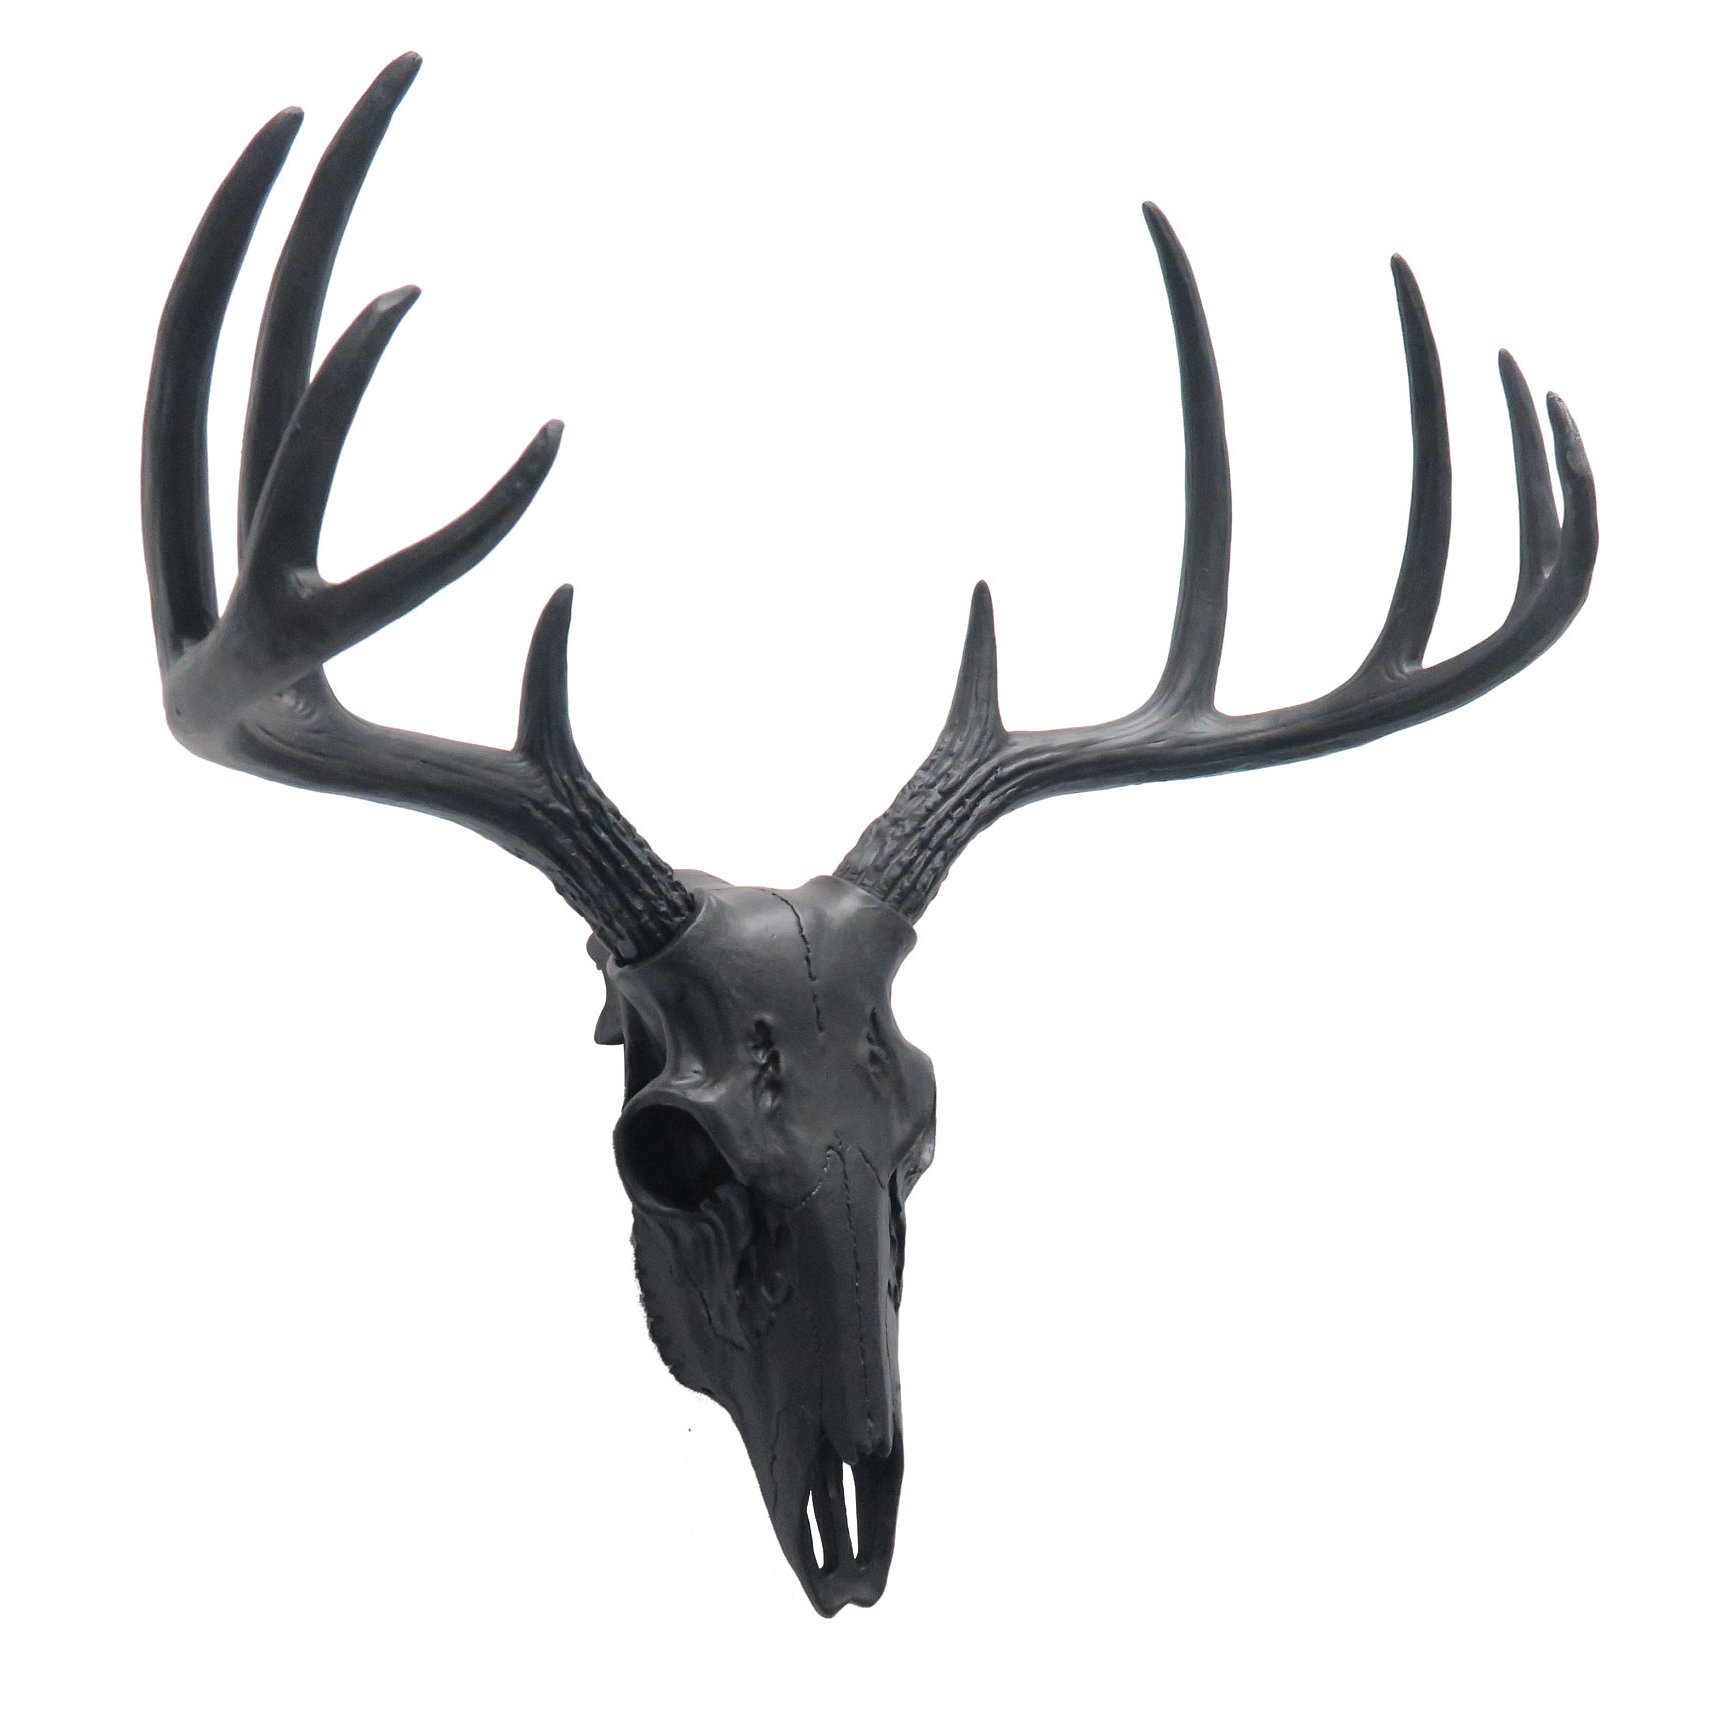 Faux Taxidermy Mini Deer Skull Wall Décor With Regard To Farm Metal Wall Rack And 3 Tin Pot With Hanger Wall Decor (View 14 of 30)